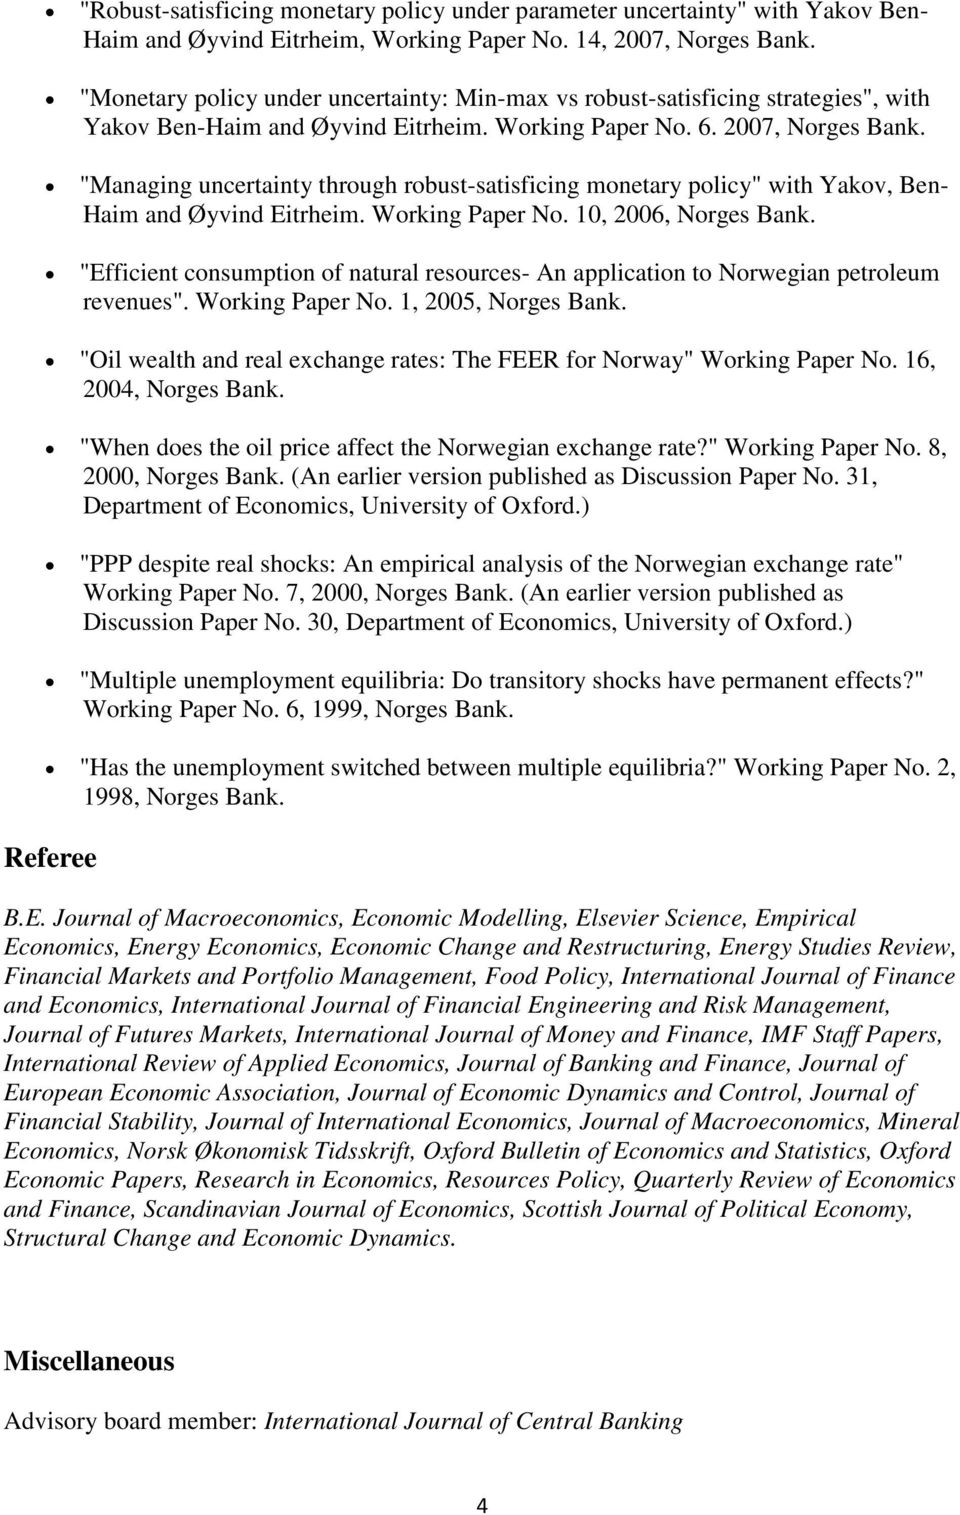 """Managing uncertainty through robust-satisficing monetary policy"" with Yakov, Ben- Haim and Øyvind Eitrheim. Working Paper No. 10, 2006, Norges Bank."